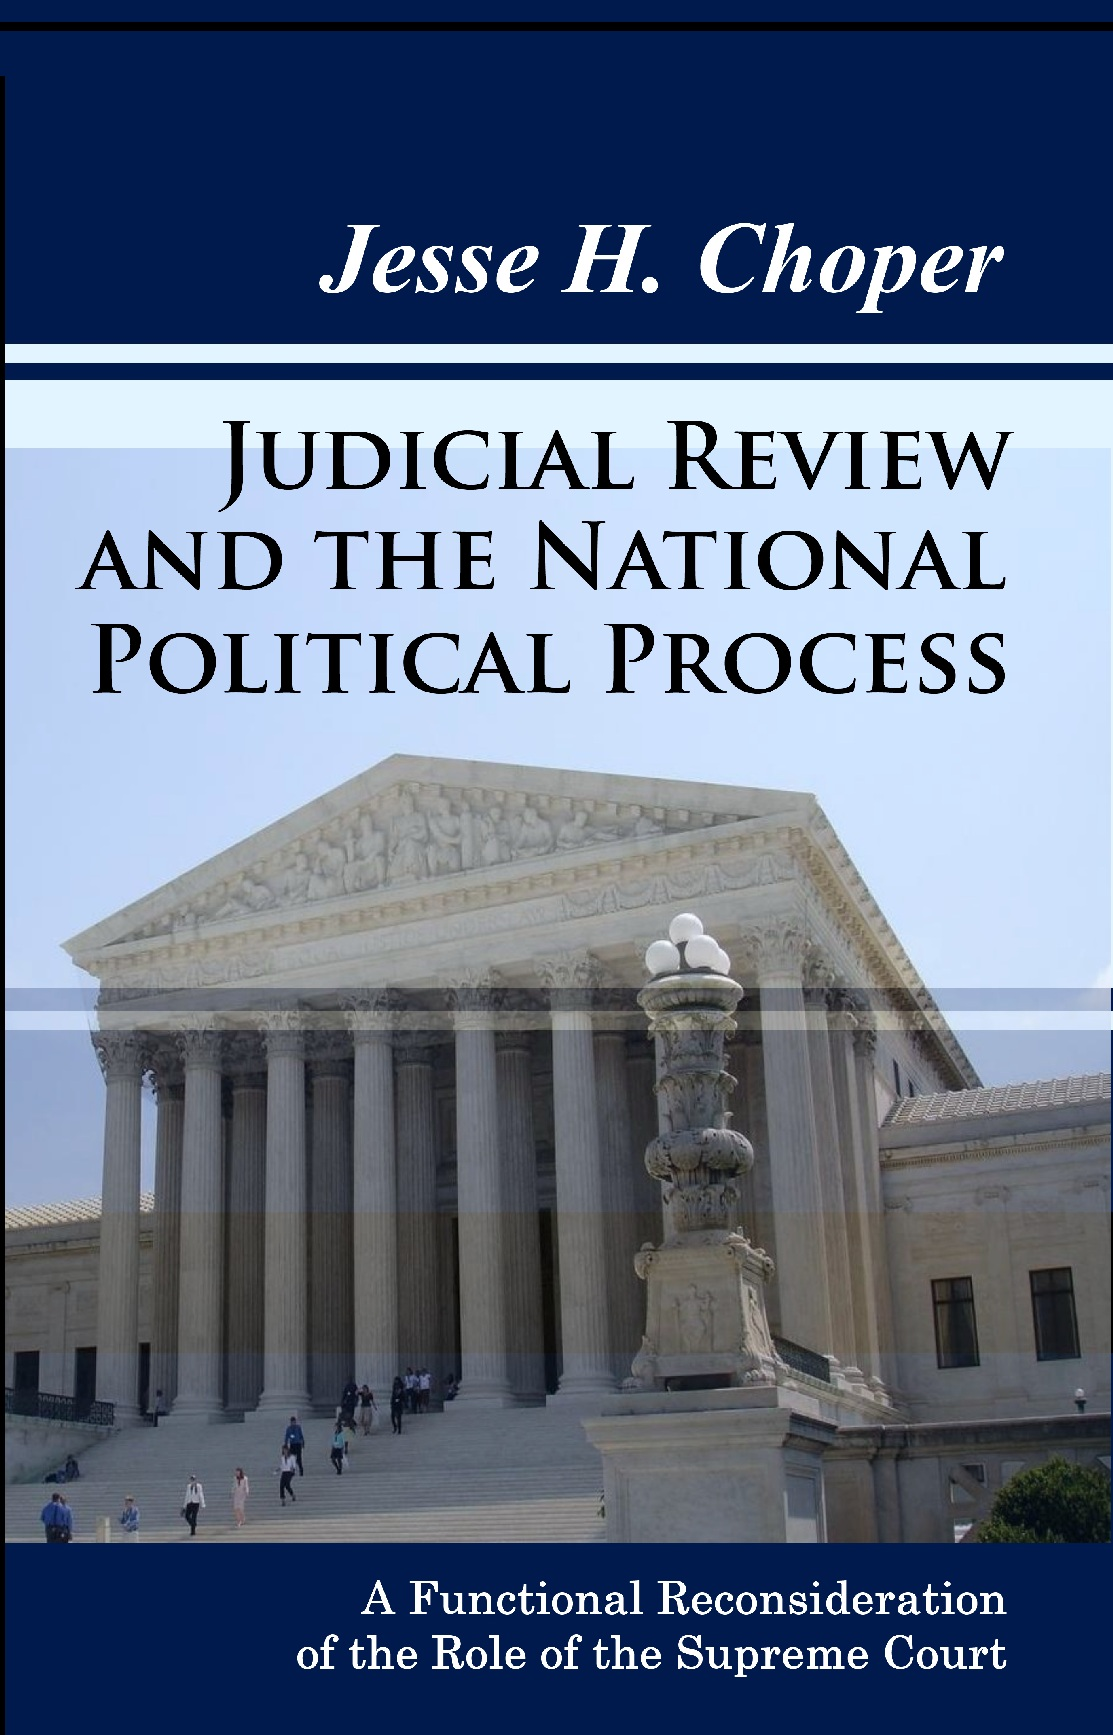 democracy and the federalist a reconsideration The framers intent paper ivan camacho his/311 democracy and the federalist: democracy and the federalist: a reconsideration of the framers intent.